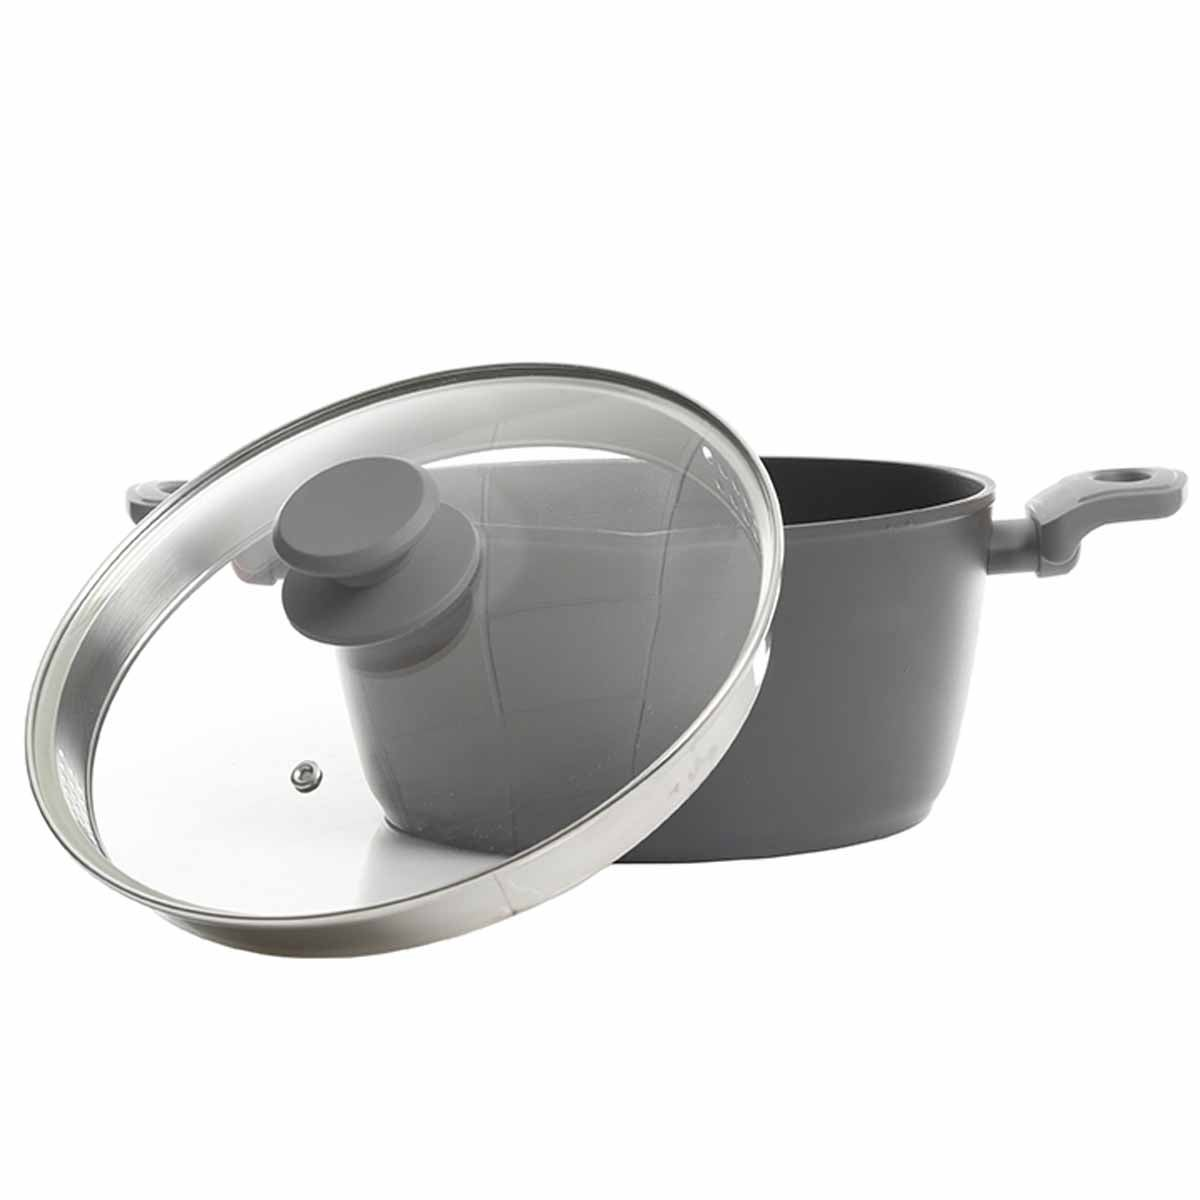 Nonstick Aluminum Dutch Oven with Lid - alternate view 2